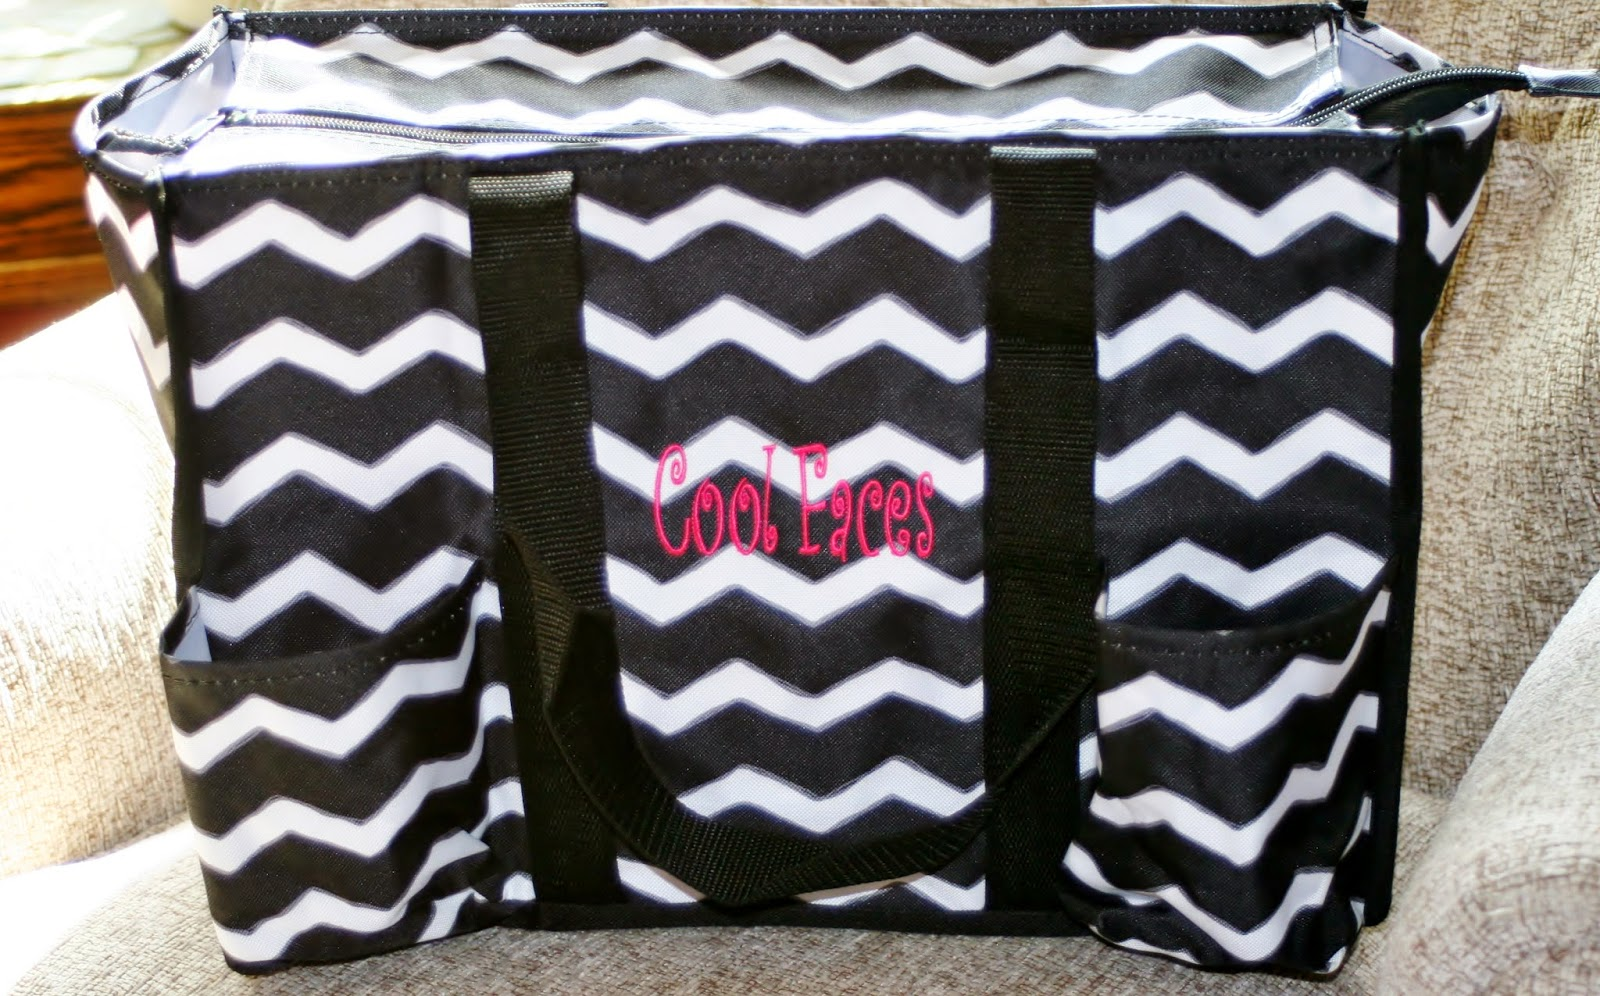 Cool Faces, Thirty-One, Customized, organized